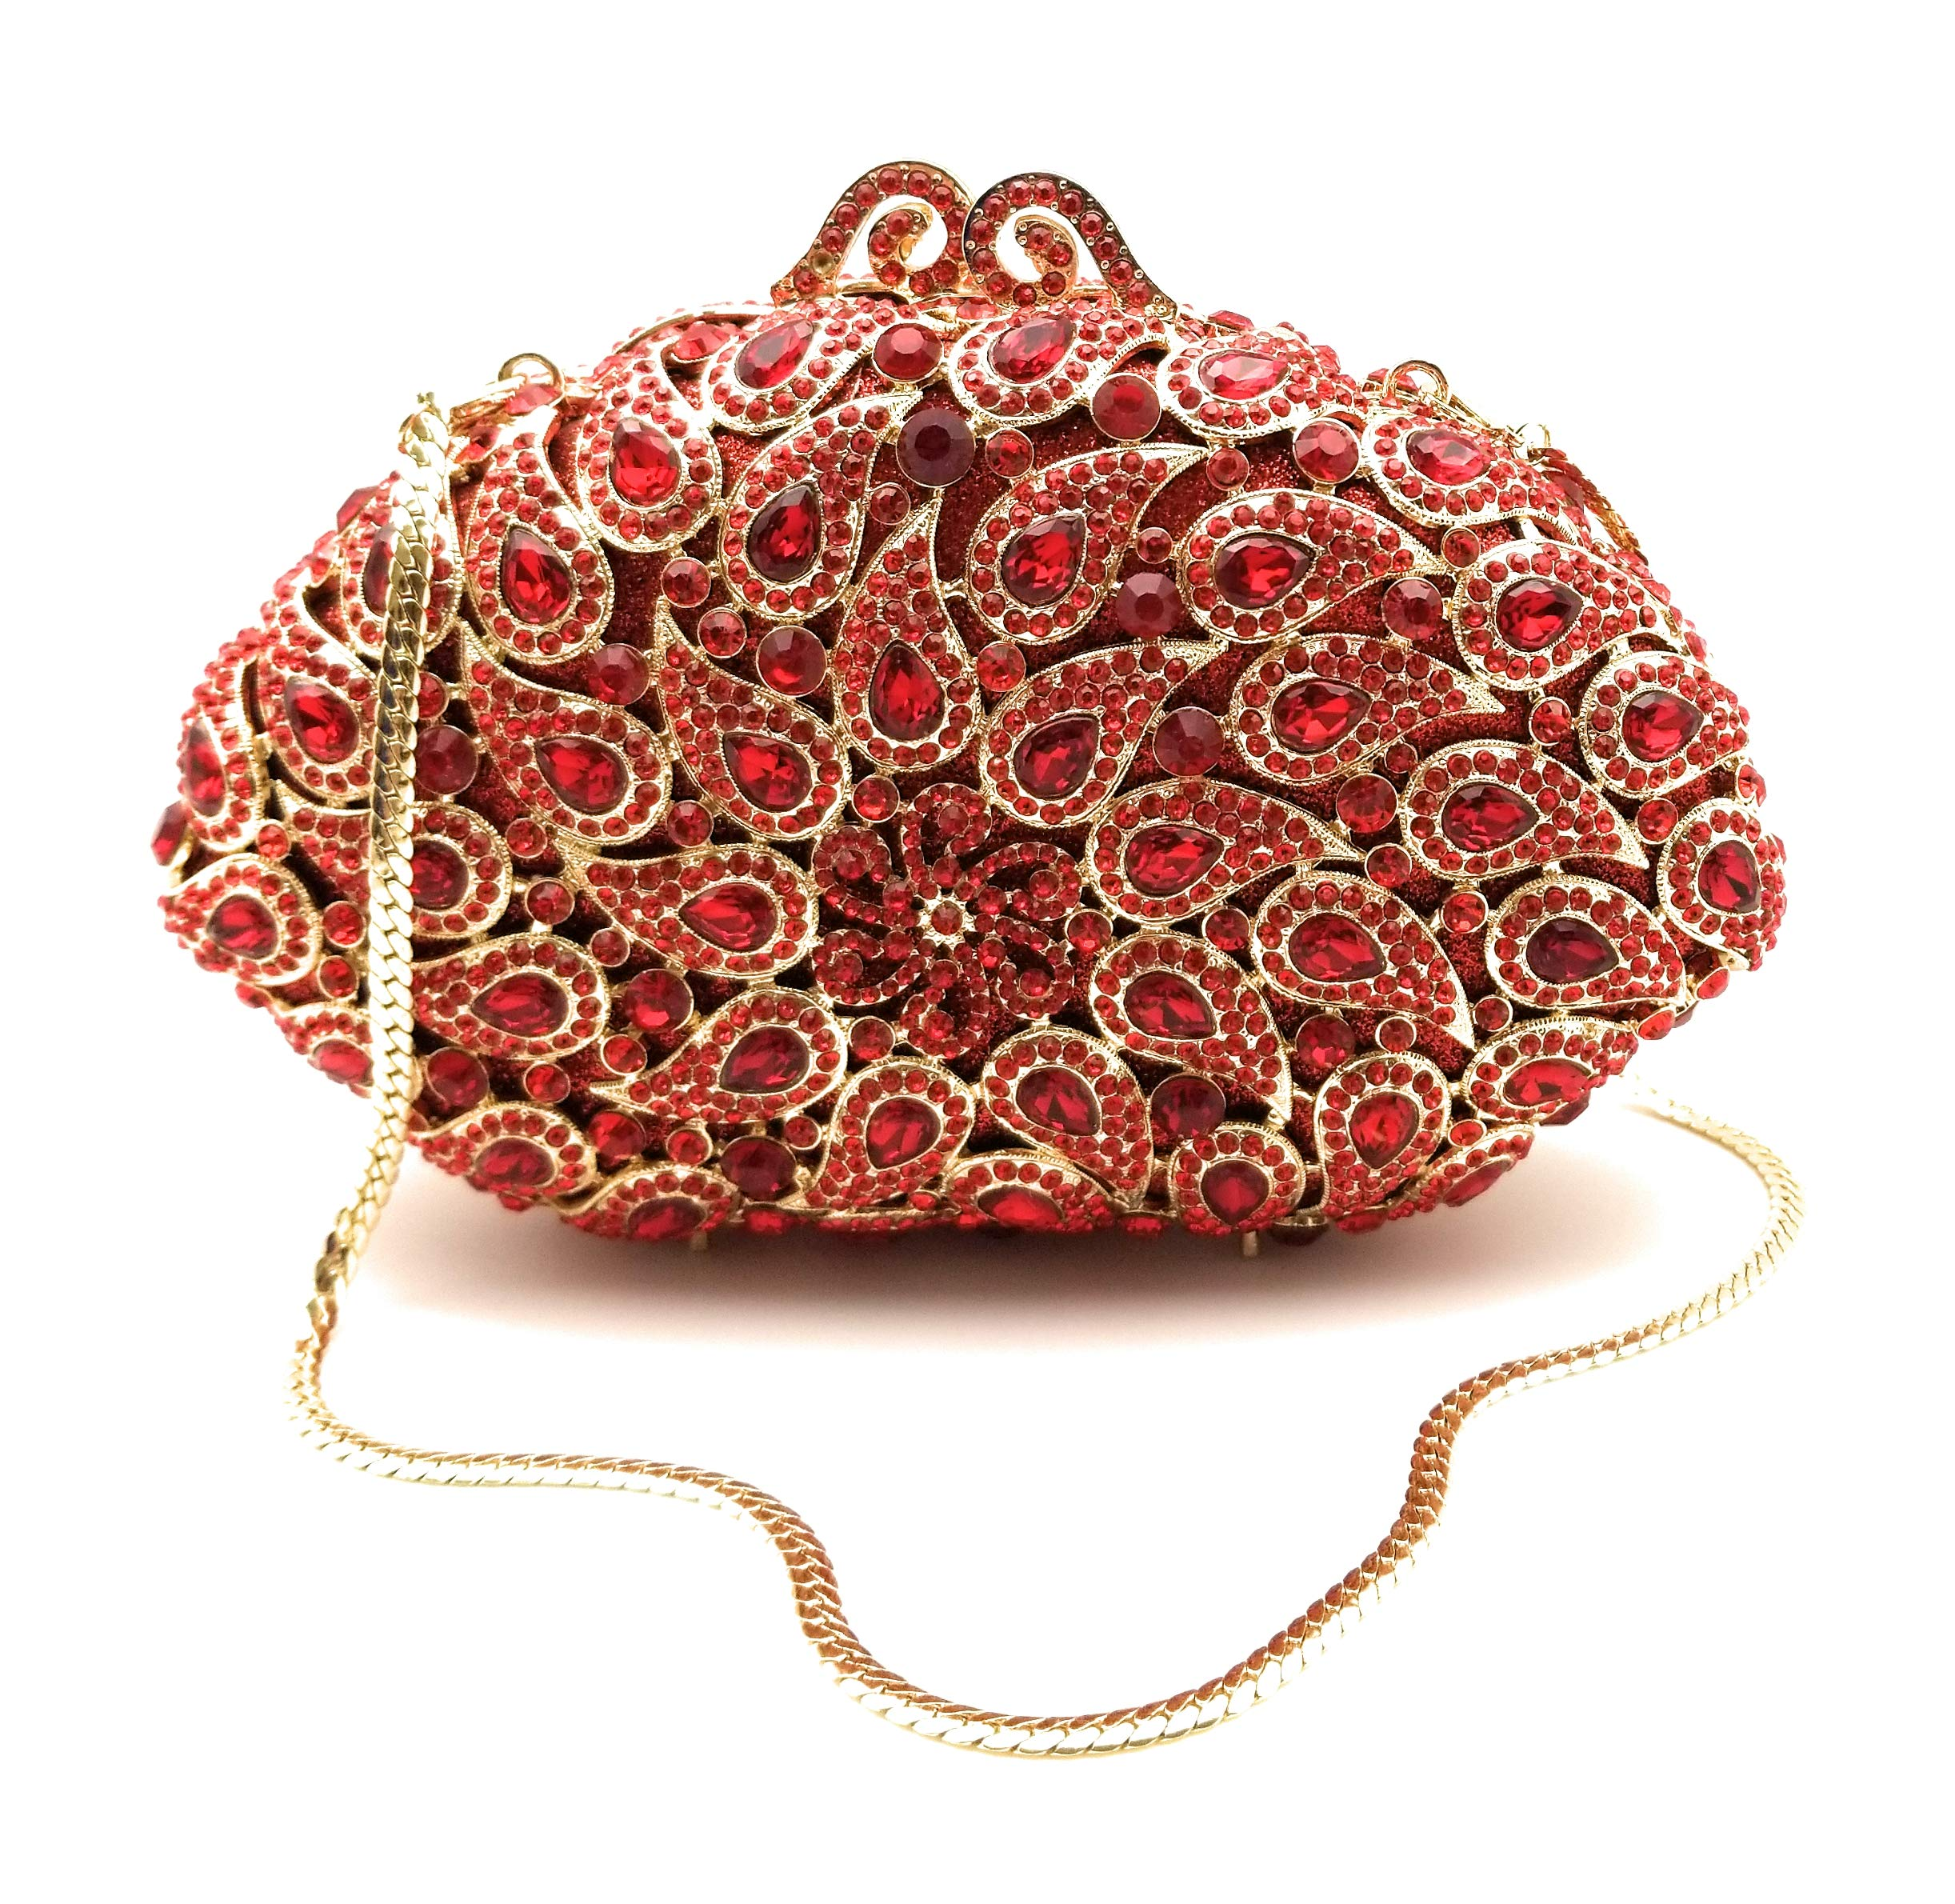 Crystal Designer Clutch Elegant Evening Handbag, Fancy Jeweled and Sparkly! (Red and Gold Paisley)